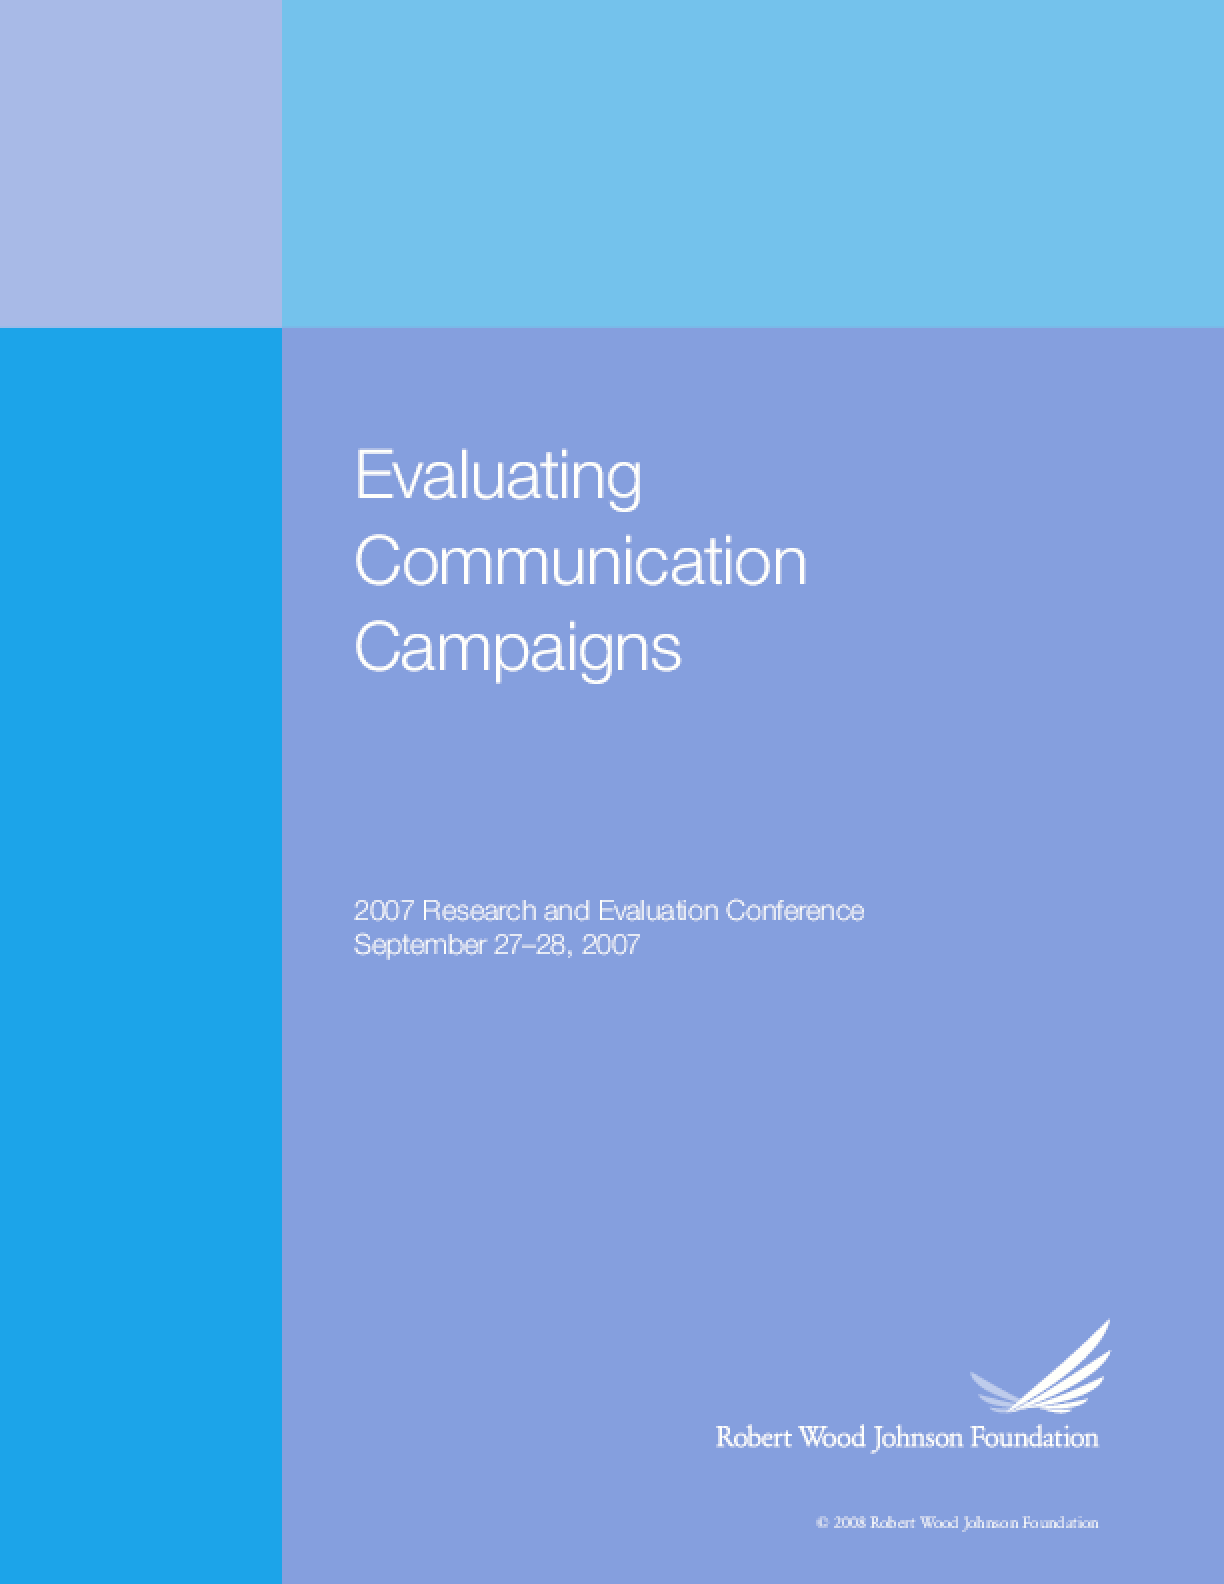 Evaluating Communication Campaigns